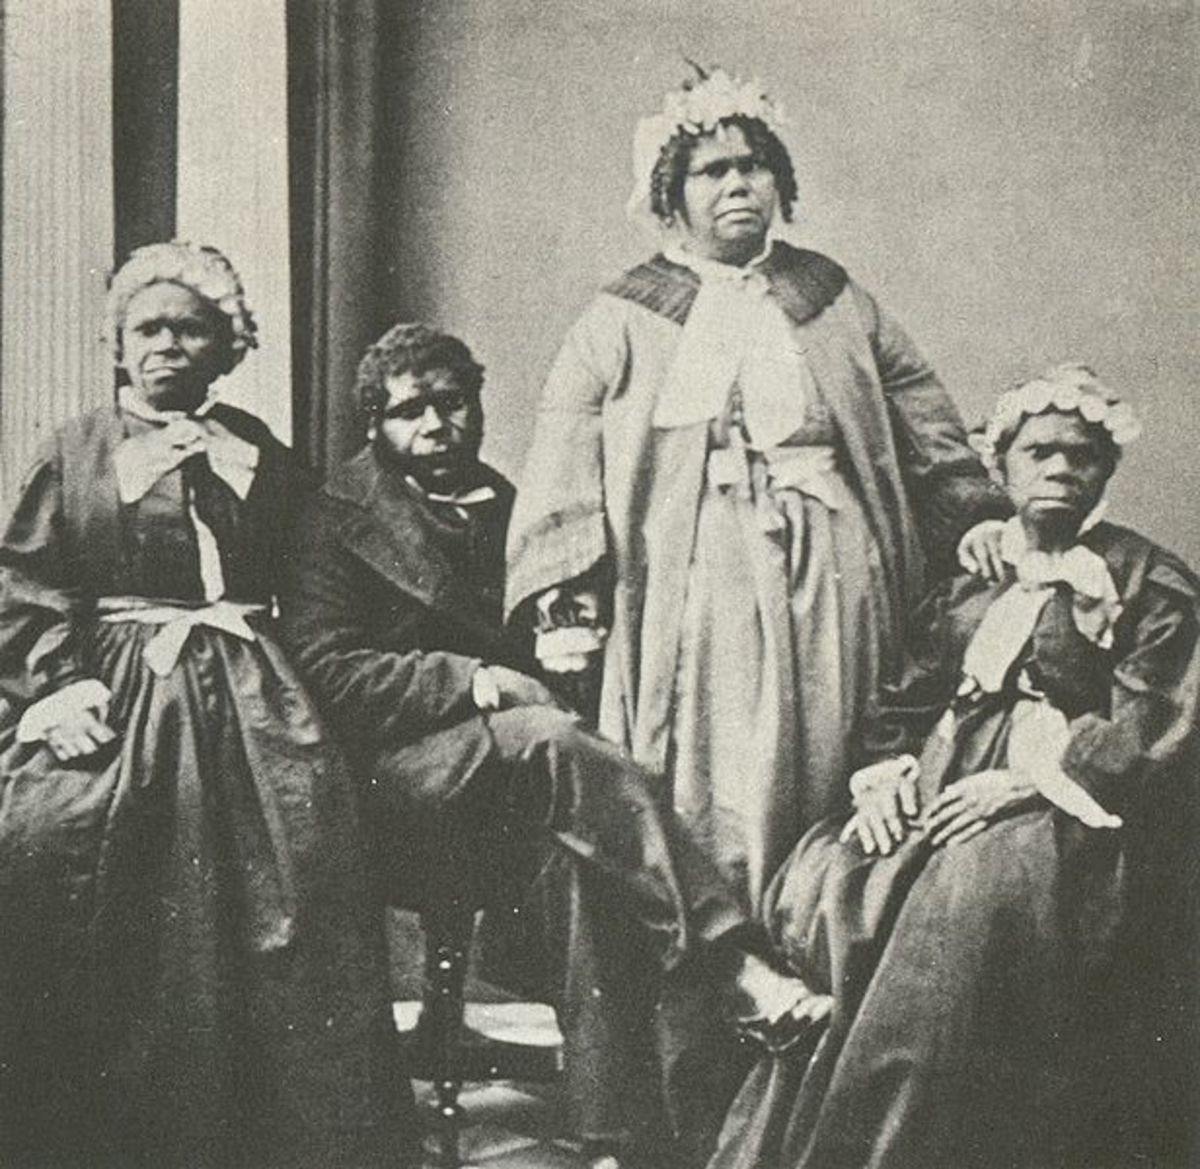 In the 1860s,there were thought to be the last four full-blooded Tasmanians. Queen Truganini is seated to the farthest right.